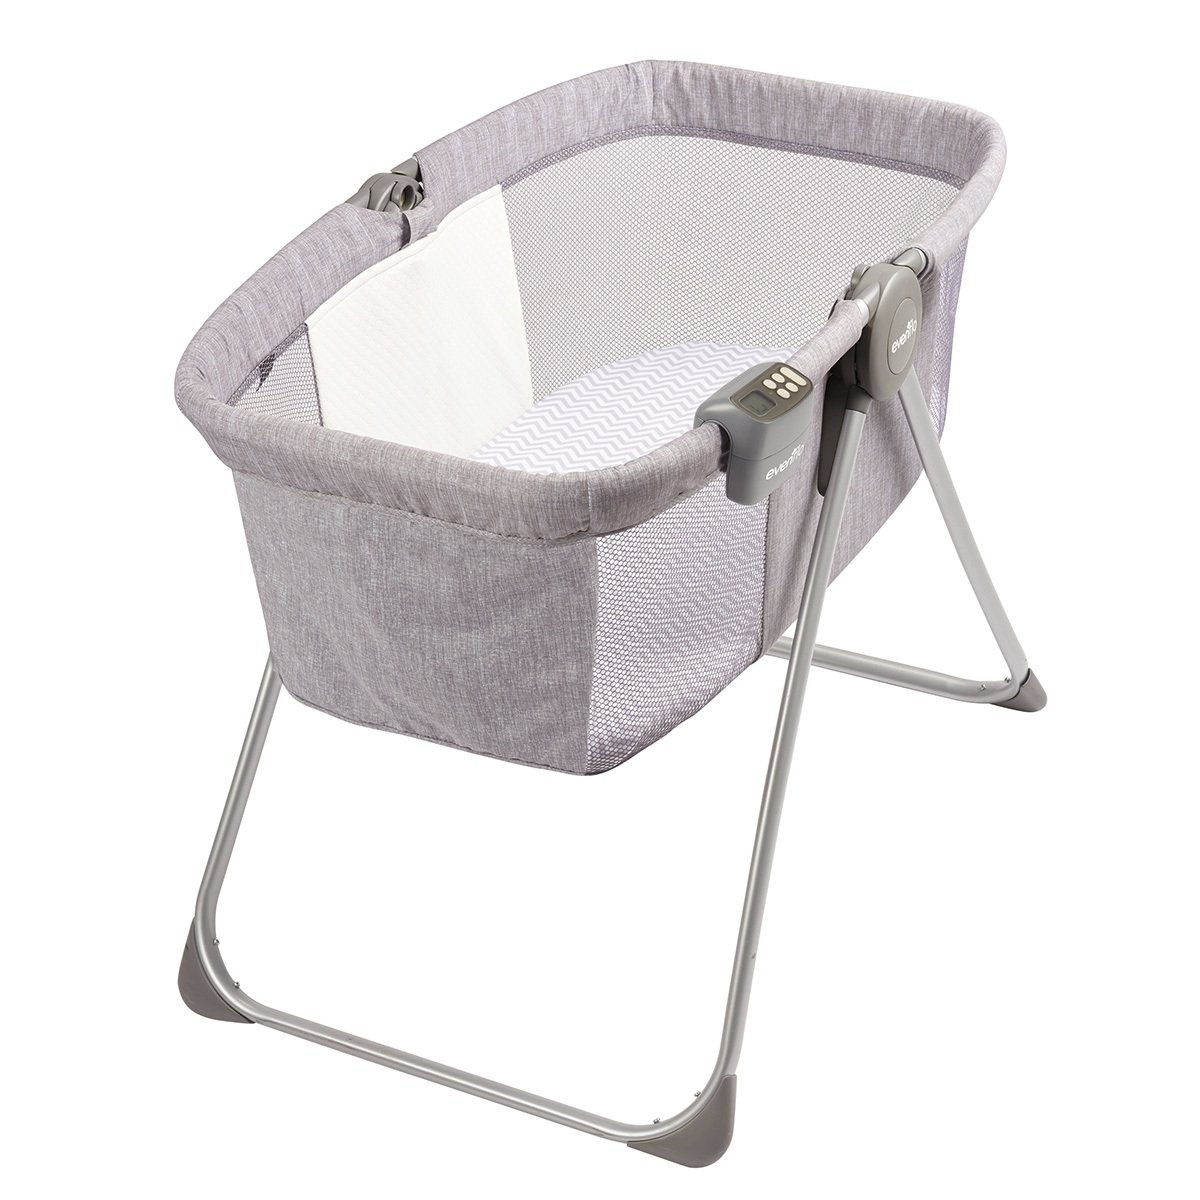 Evenflo Loft Portable Bassinet, Grey Melange